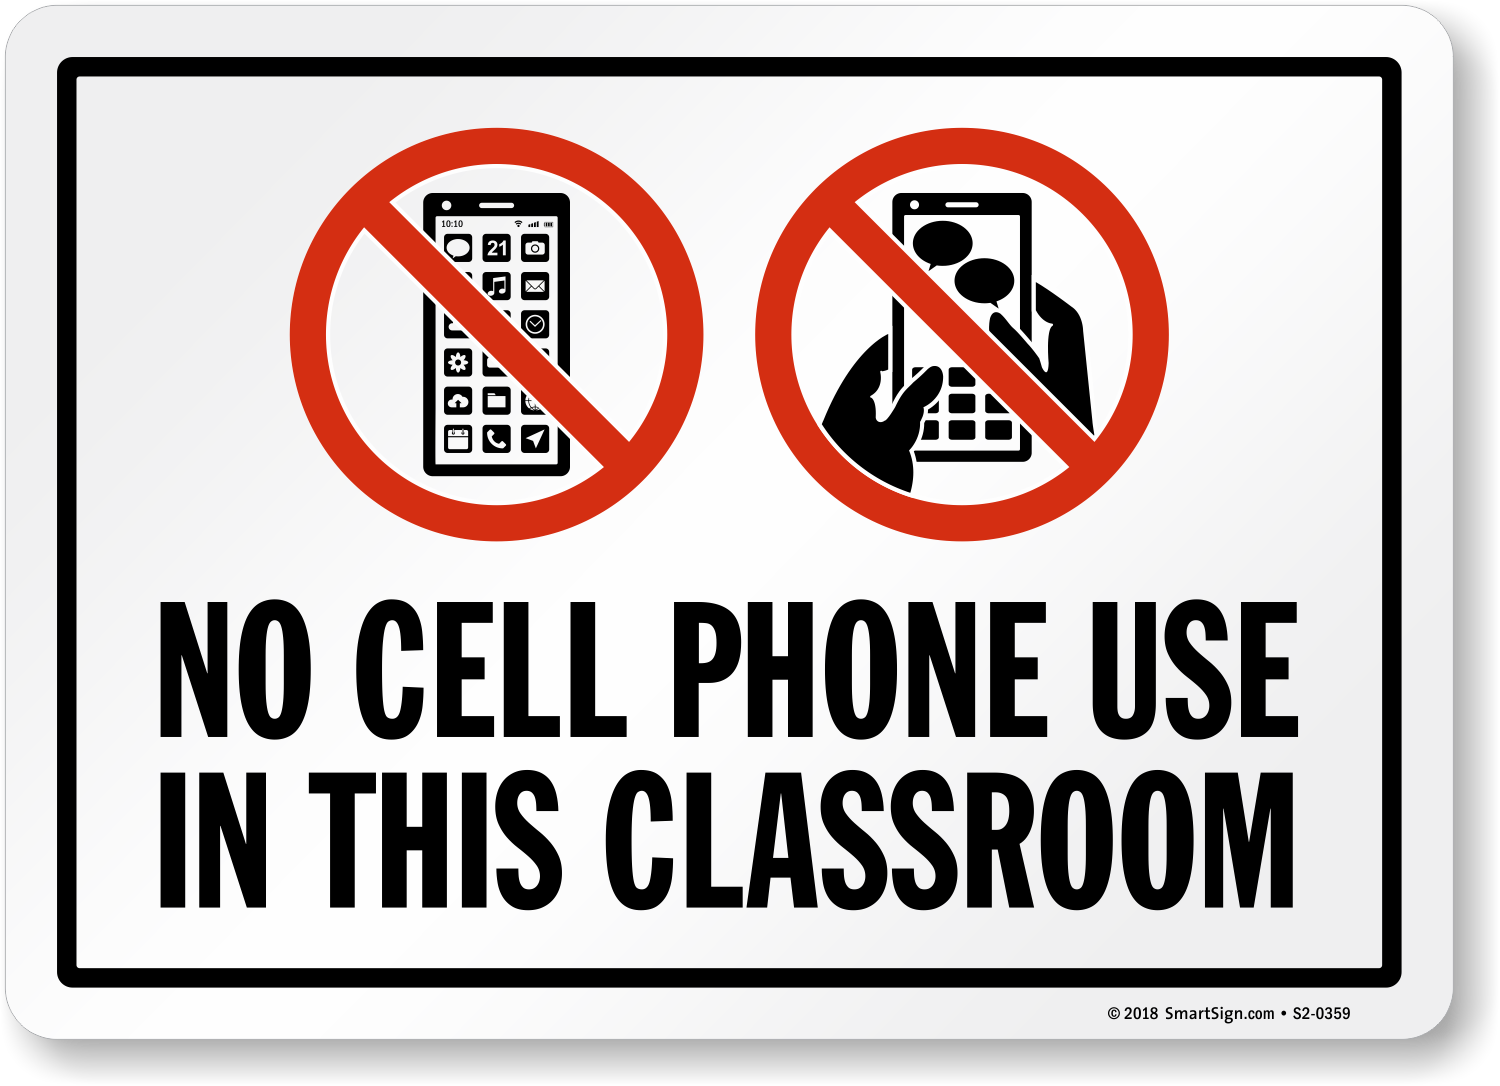 Communication on this topic: How to Turn On a Cellphone, how-to-turn-on-a-cellphone/